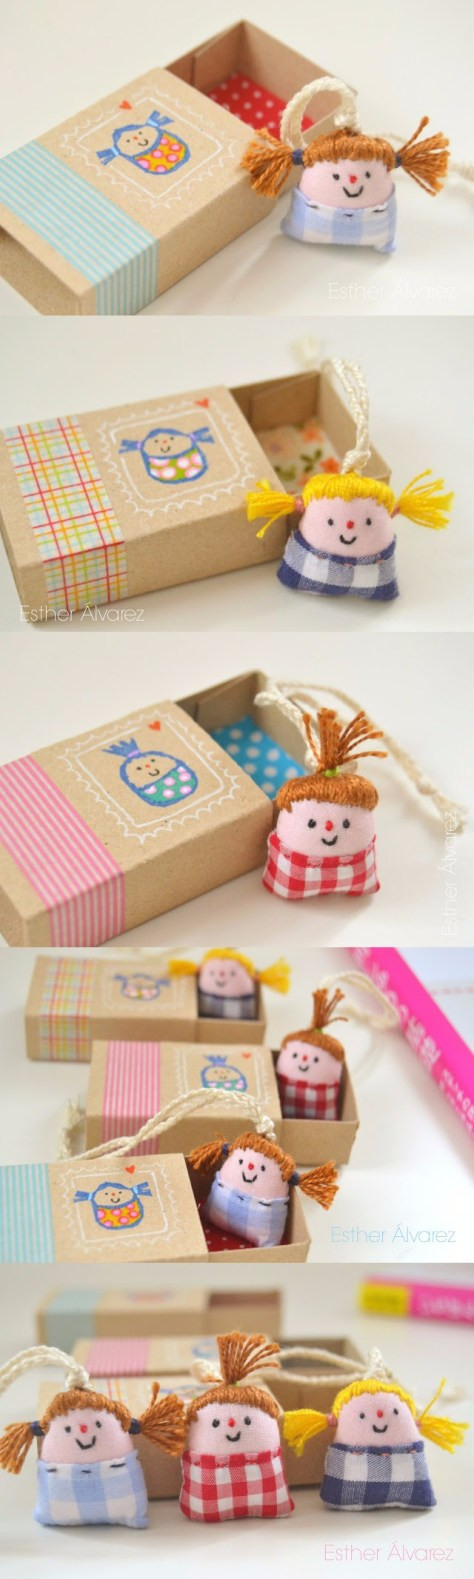 DIY Miniature Dolls With Beds